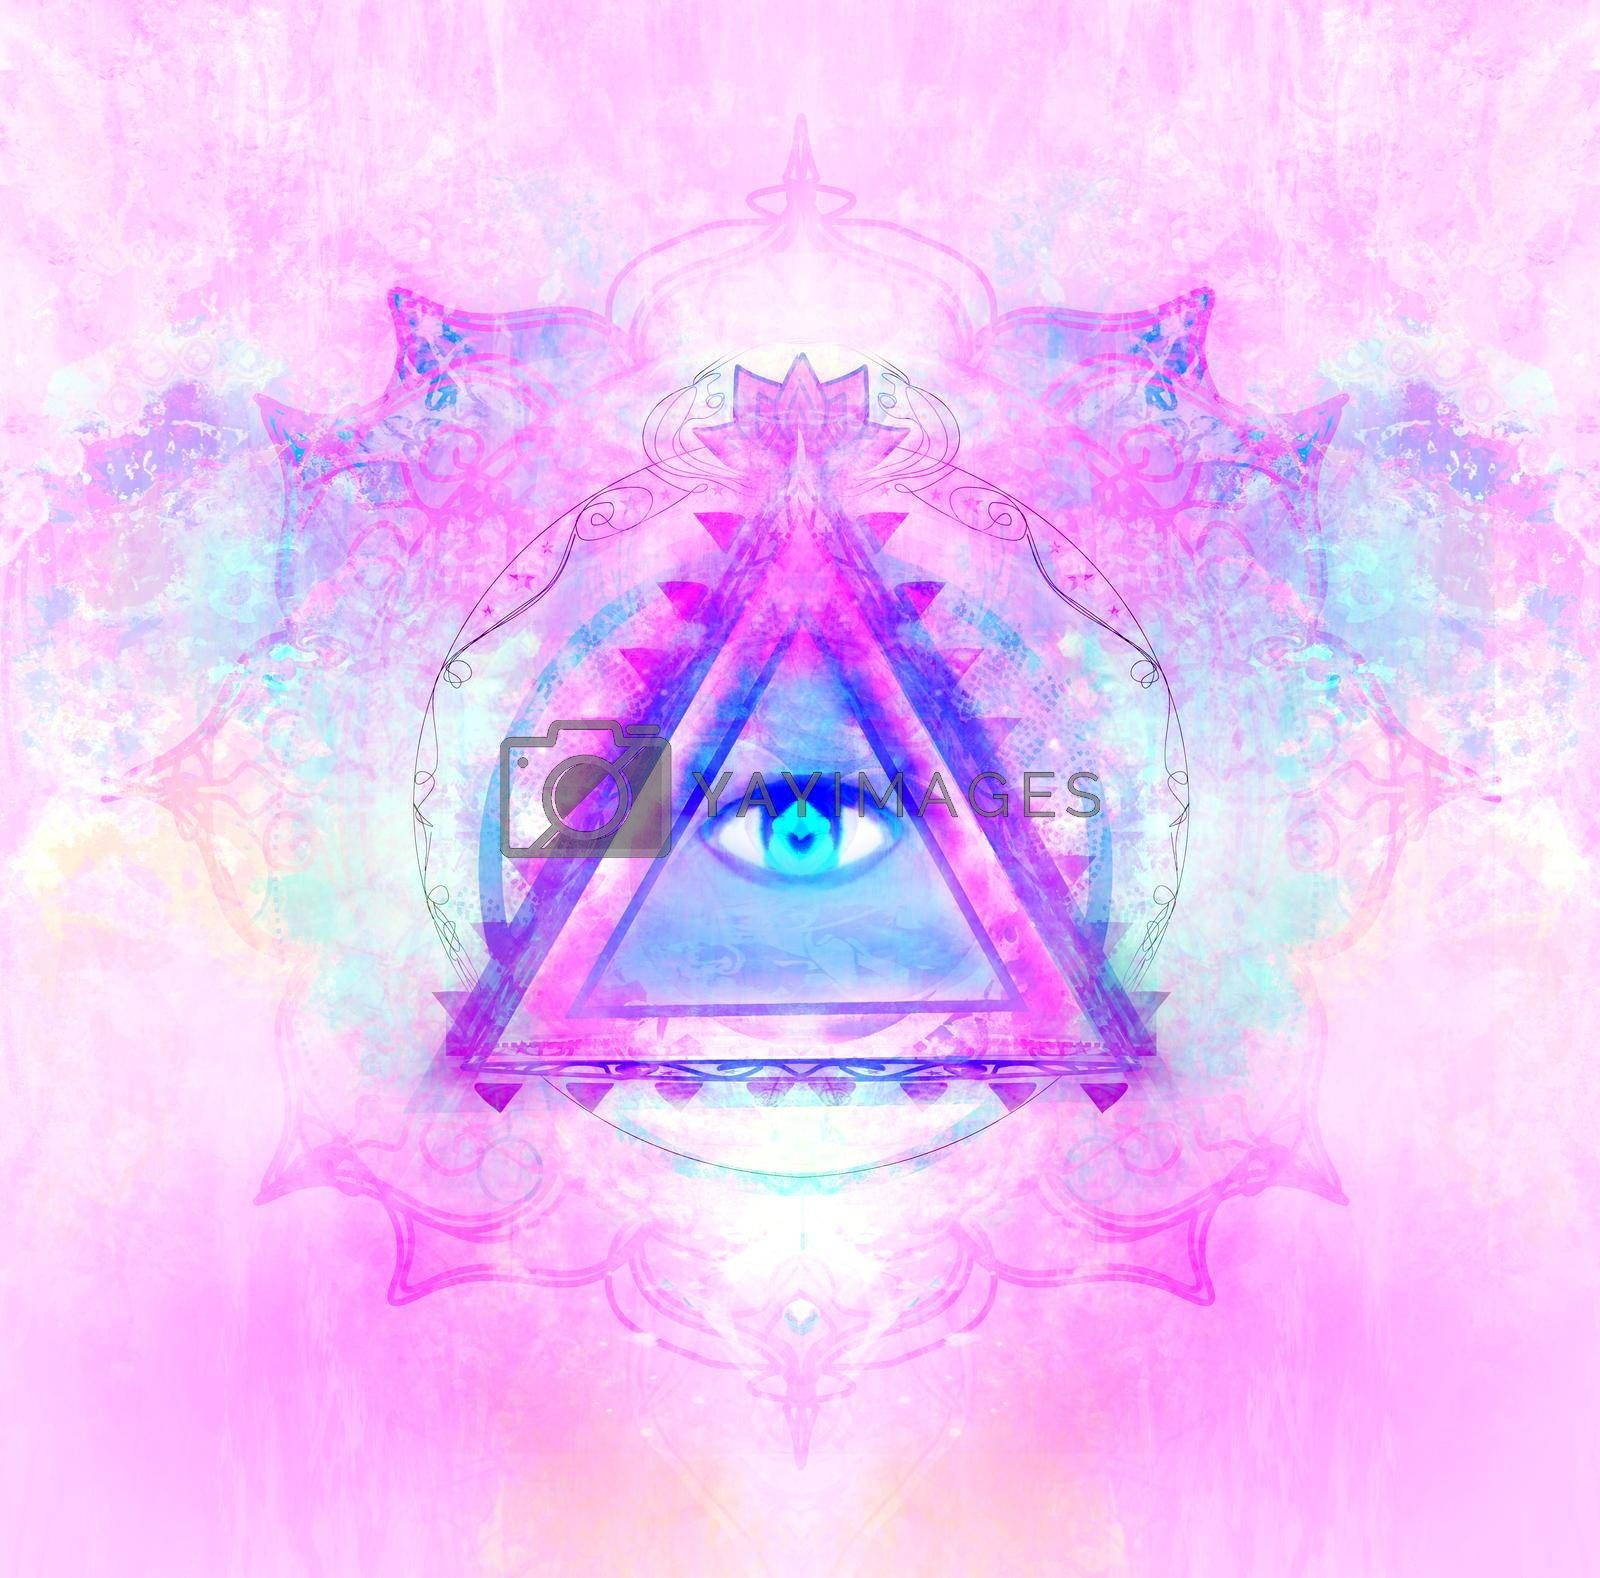 Royalty free image of All seeing eye inside triangle pyramid.  by JackyBrown